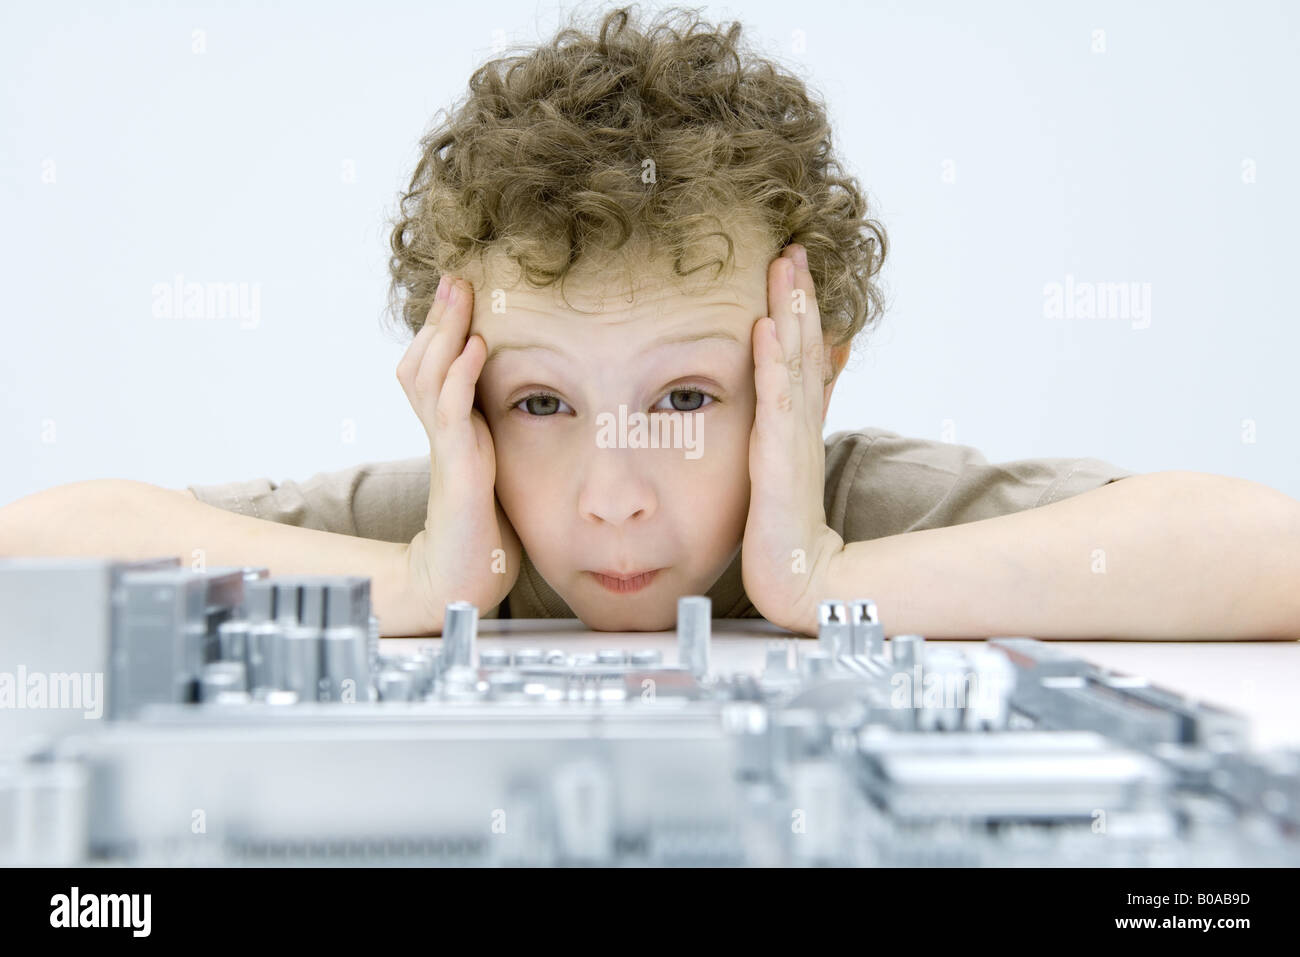 Little boy looking at circuit board, holding head, raising eyebrows - Stock Image